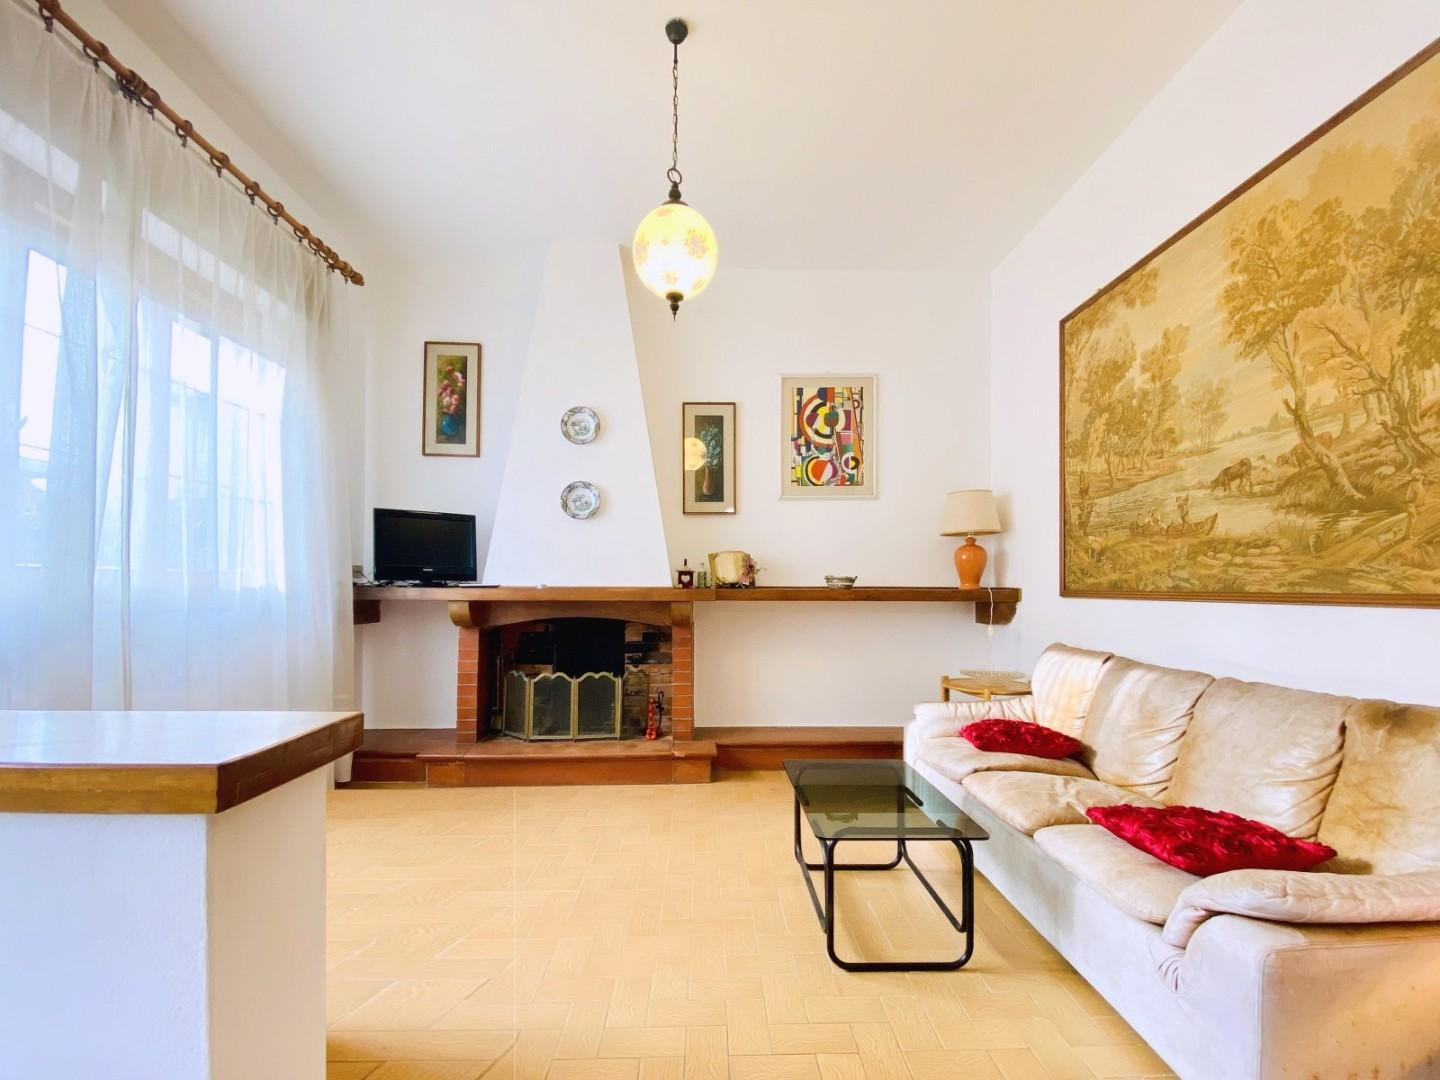 Semi-detached house for sale in Pietrasanta (LU)